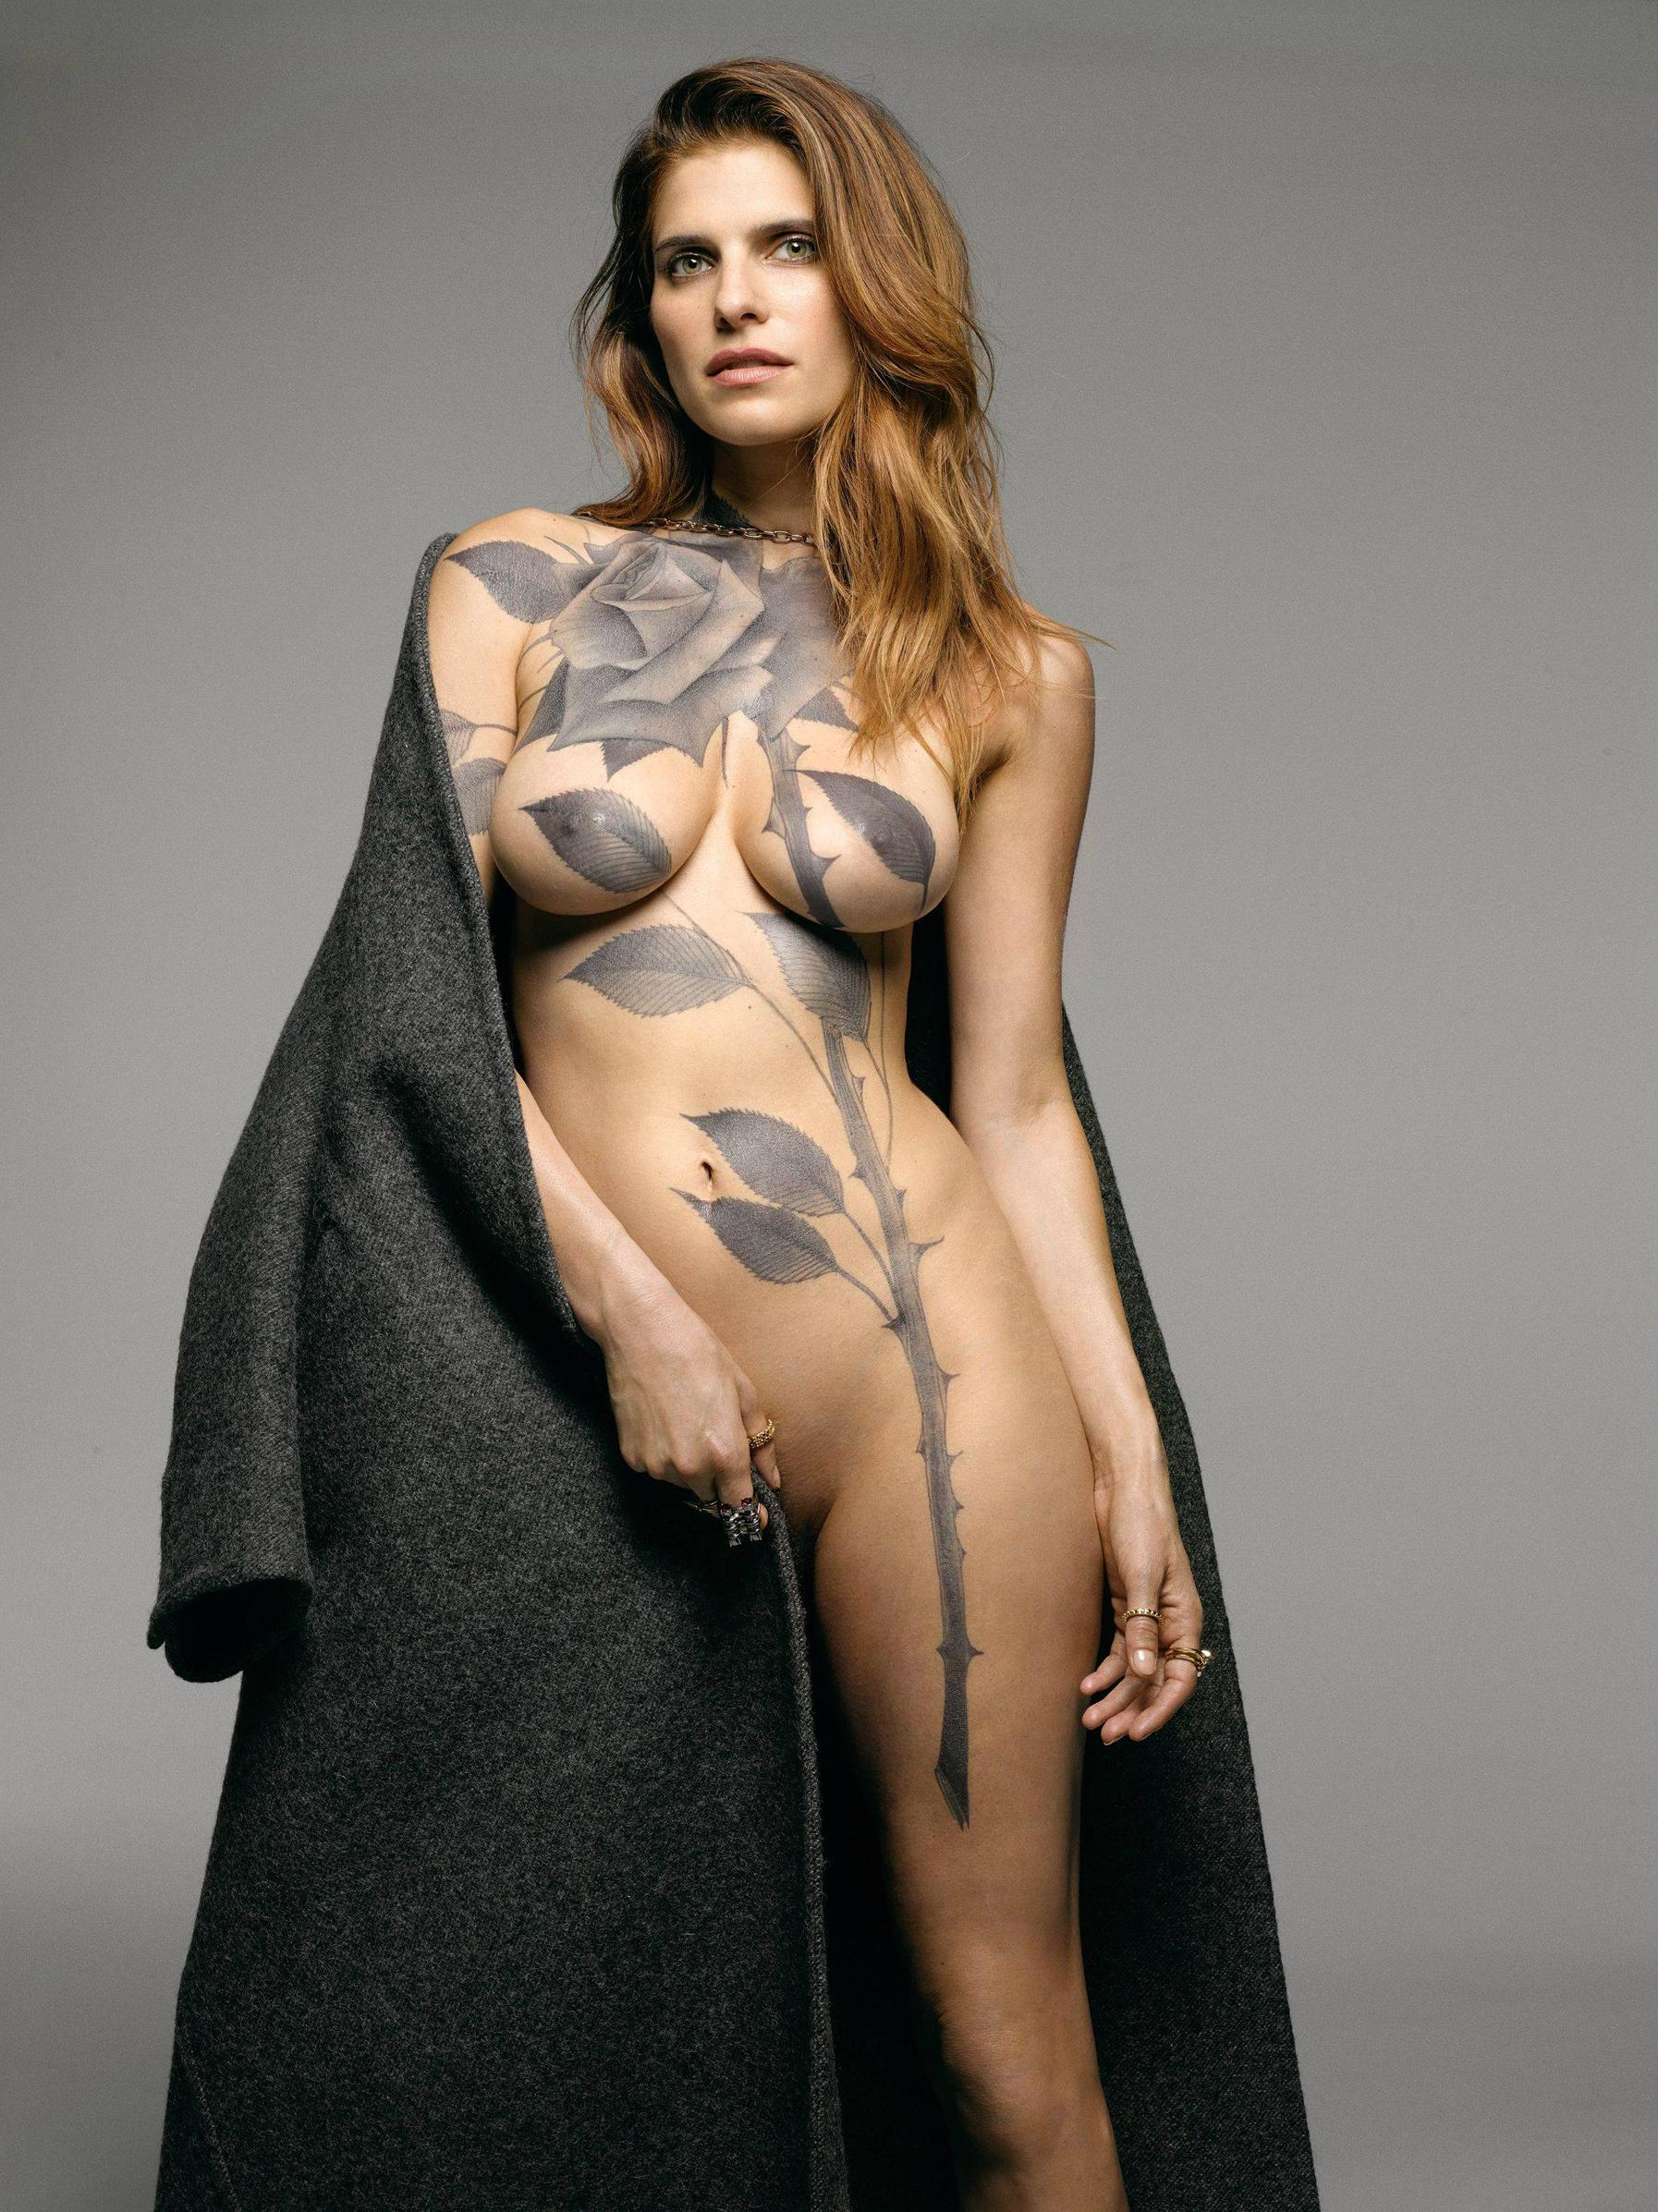 Lake Bell Body Art